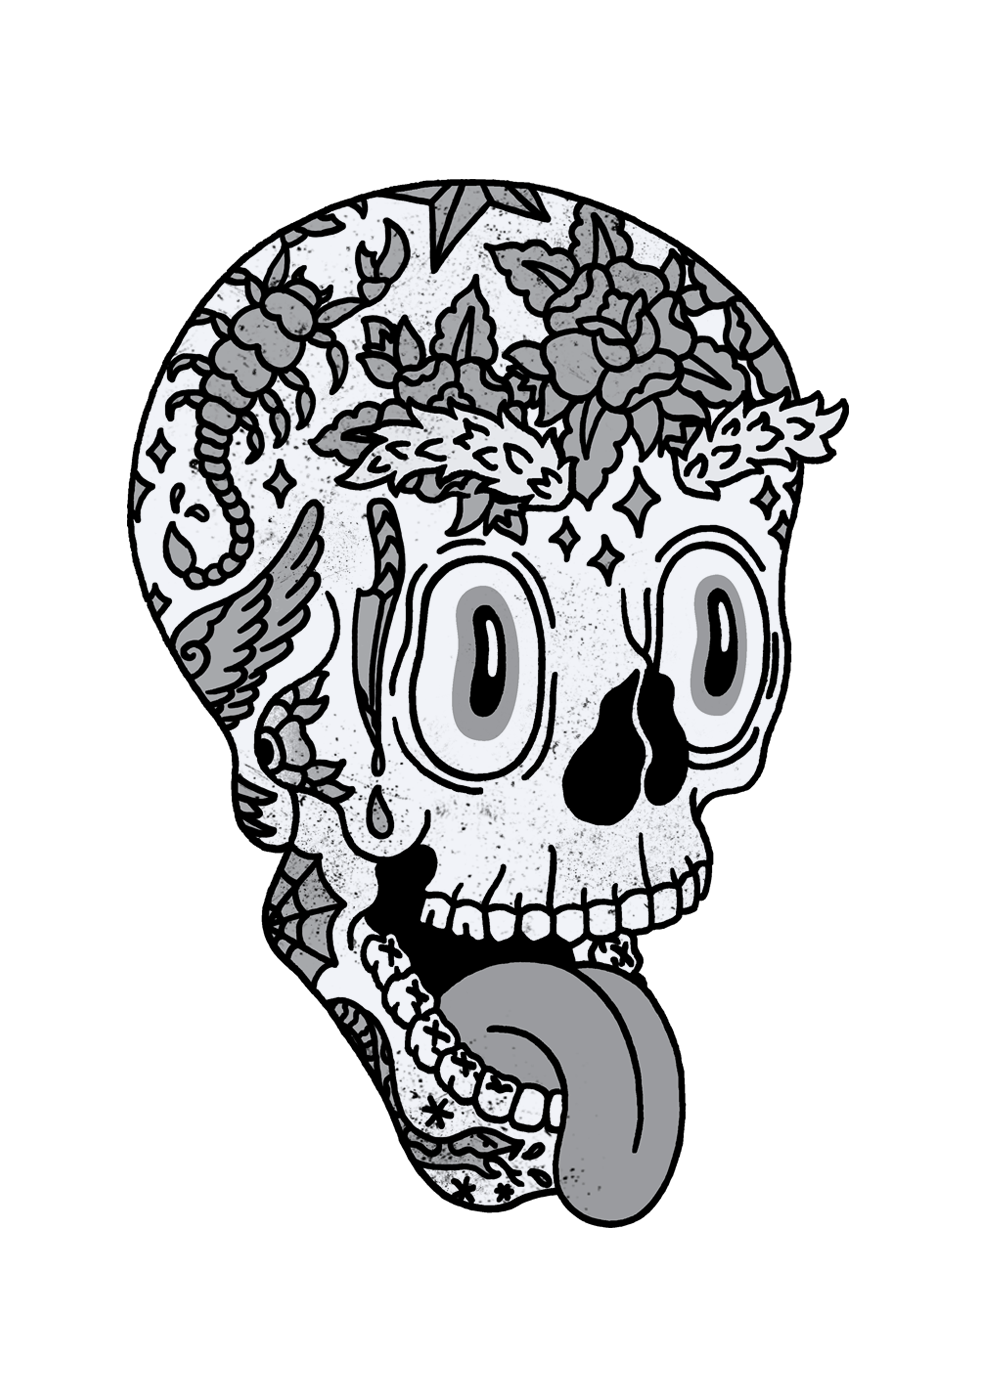 Tattooed_Skull_v3.png